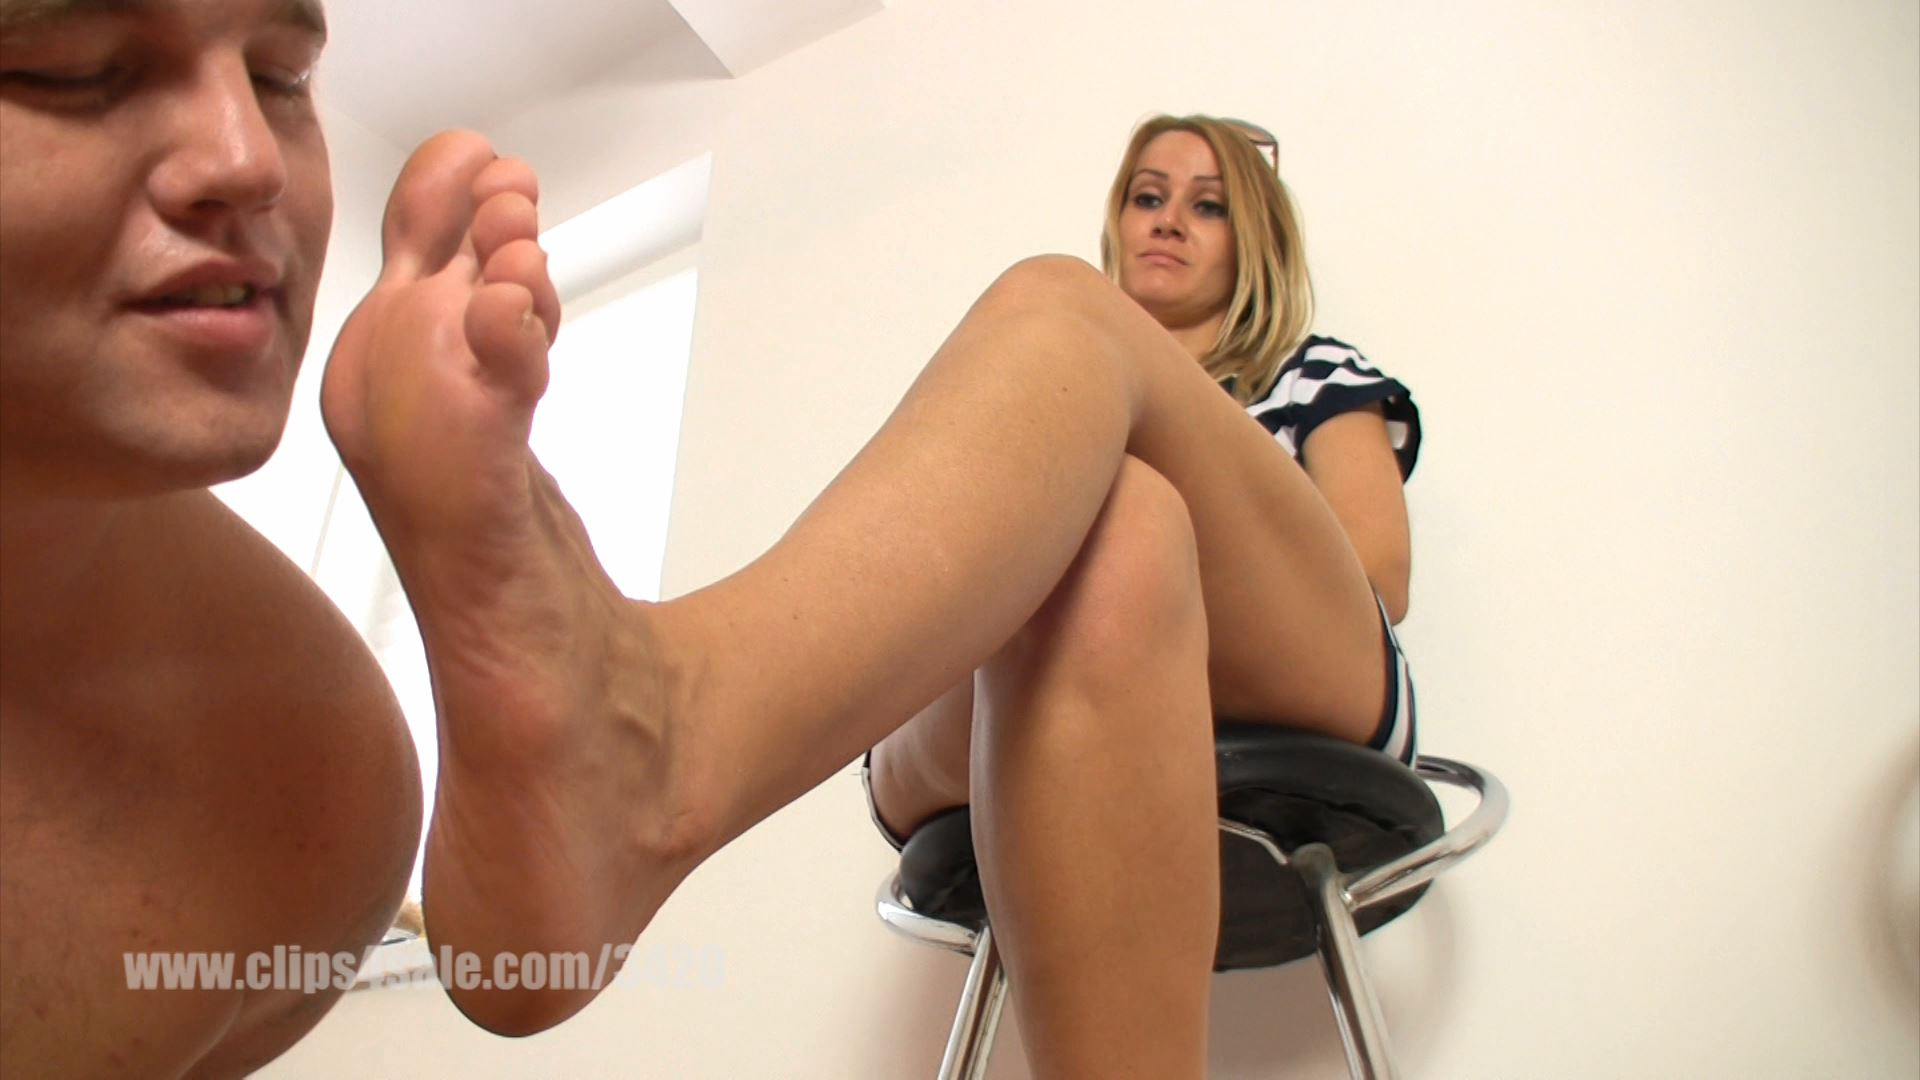 The loser smells and kisses Lady Demona sweaty bare feet - ELEGANTFEMDOM - FULL HD/1080p/MP4